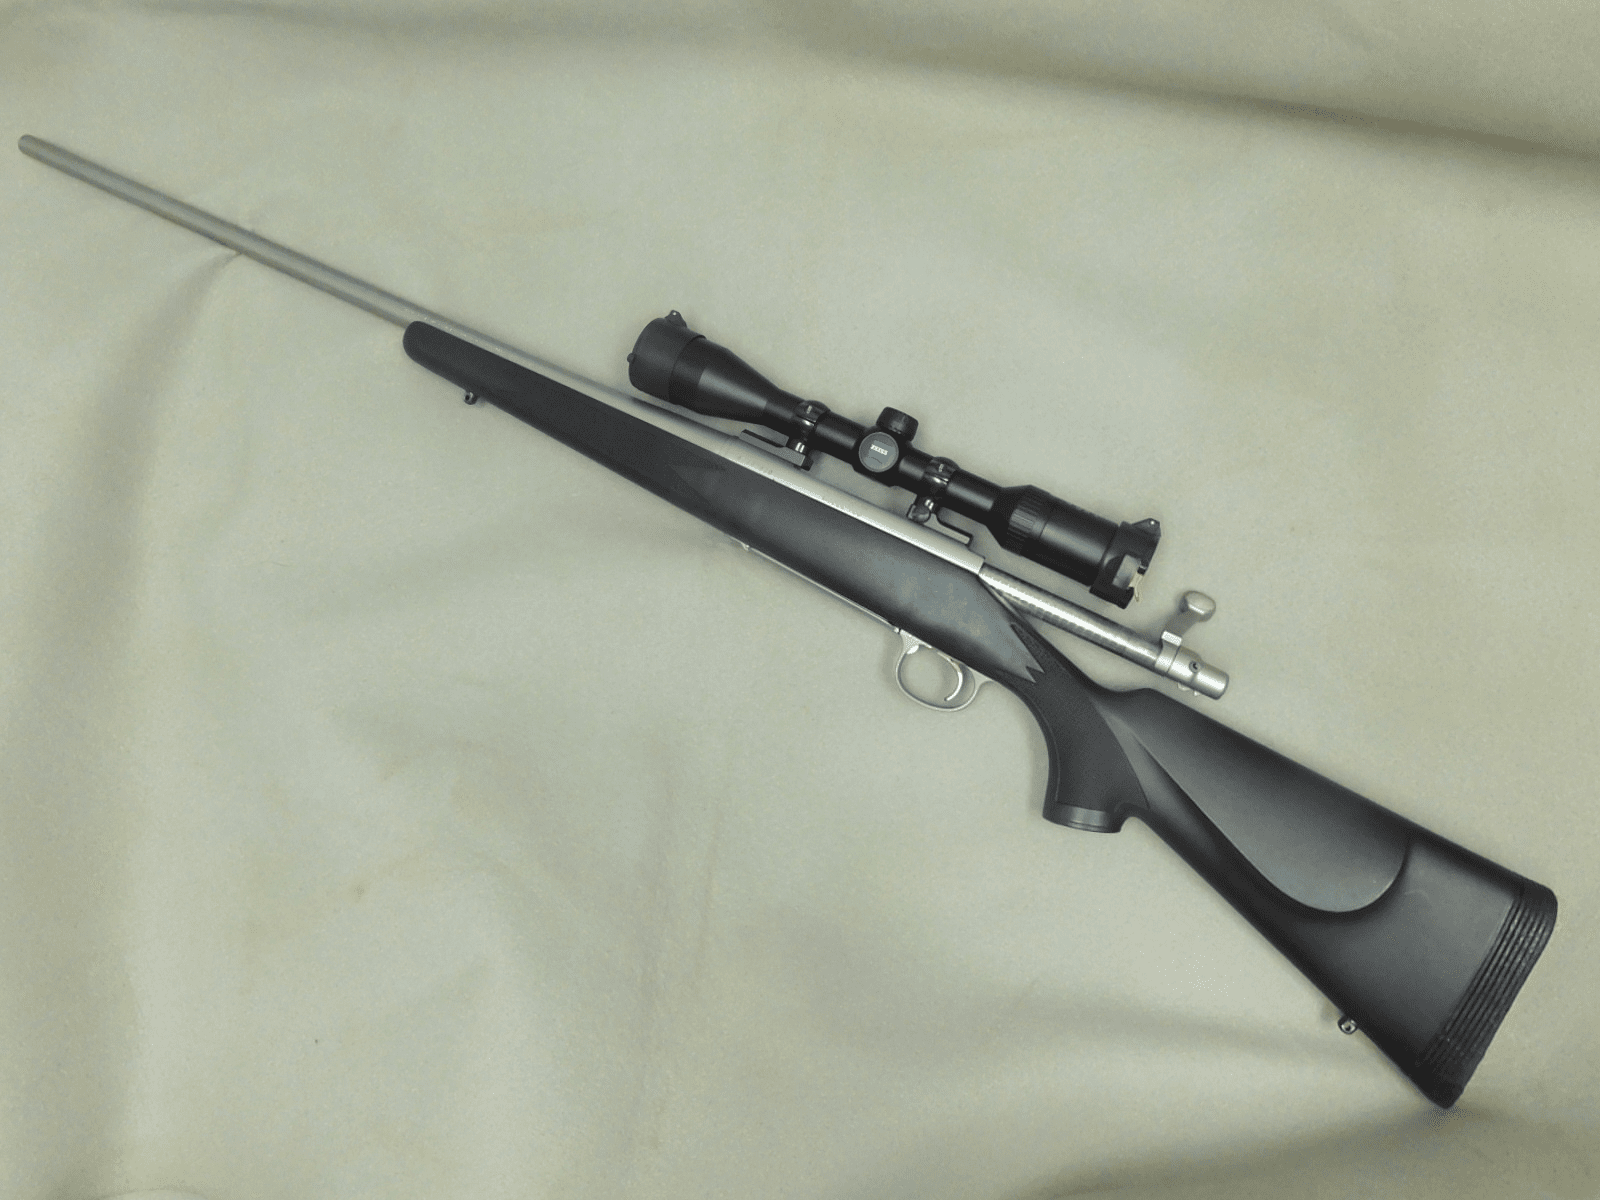 Remington 700 (.300 REM) with scope